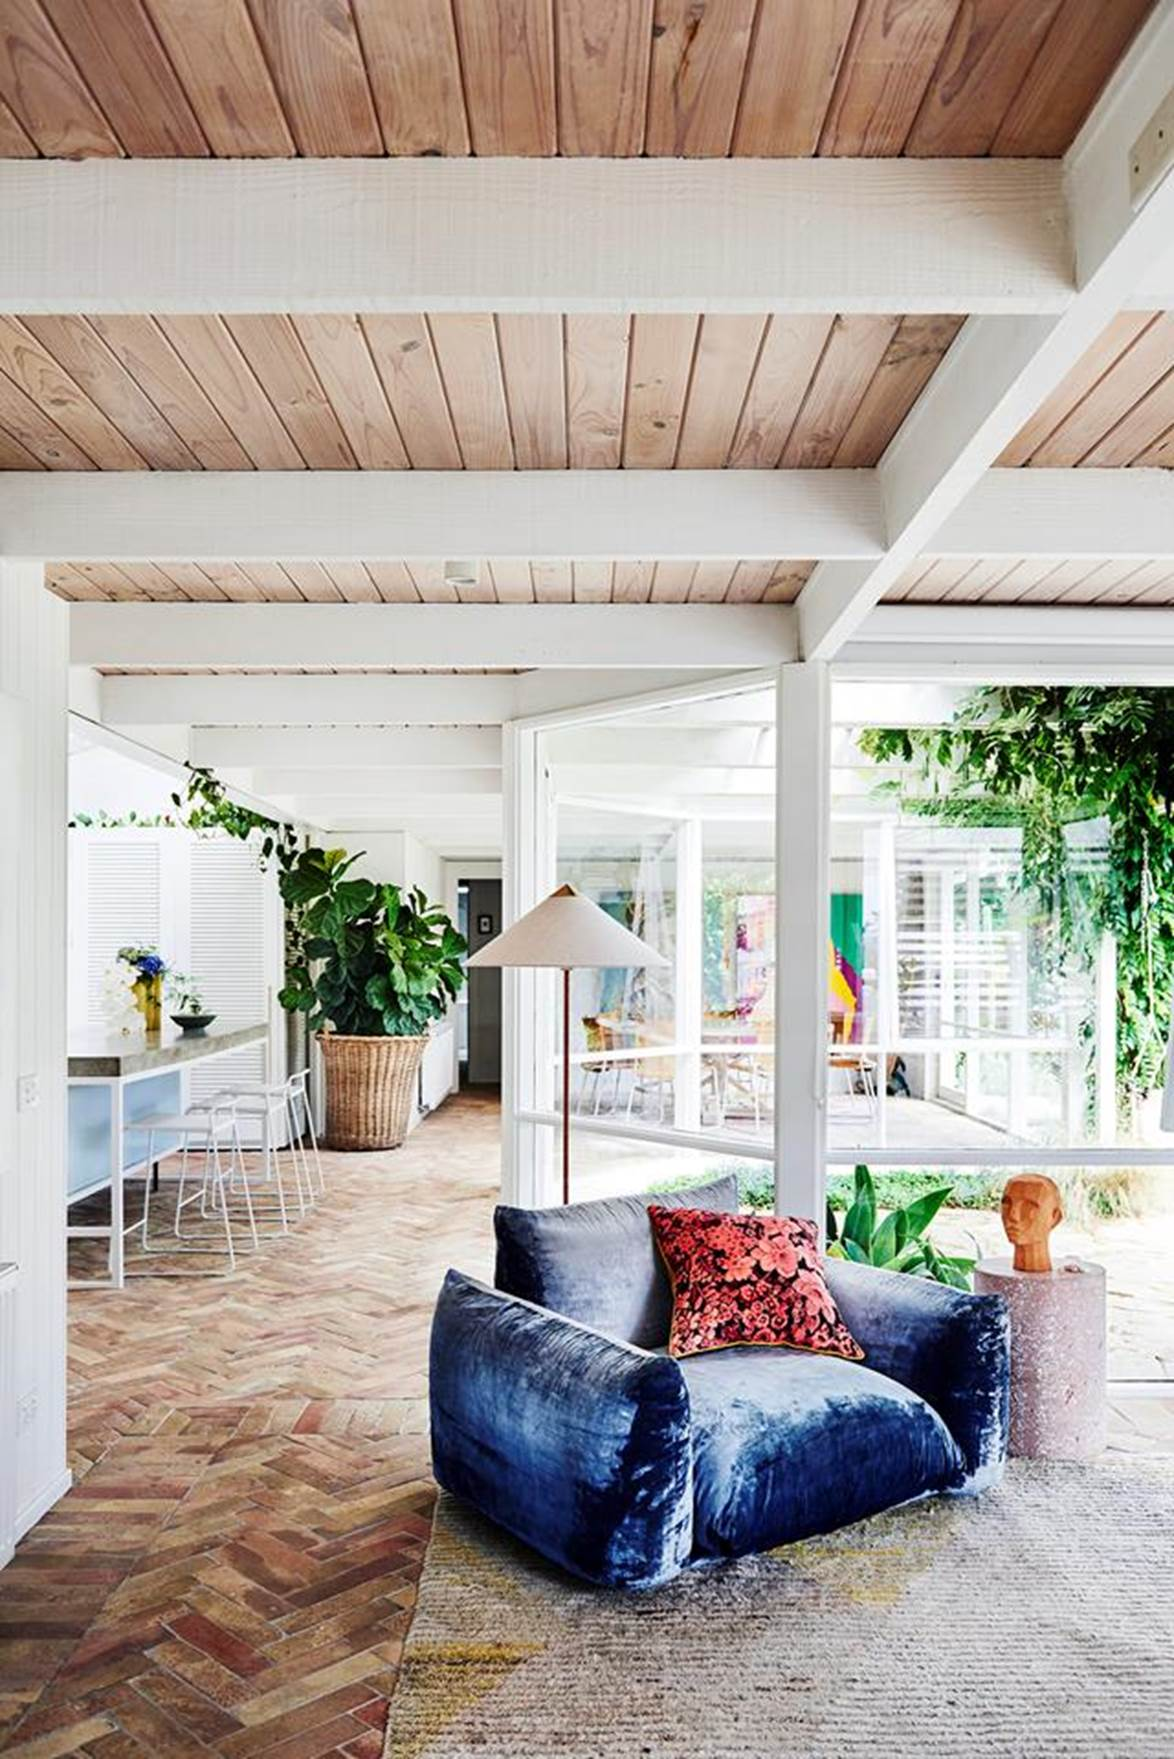 """This [playful house](https://www.homestolove.com.au/prudence-olivieri-home-21346